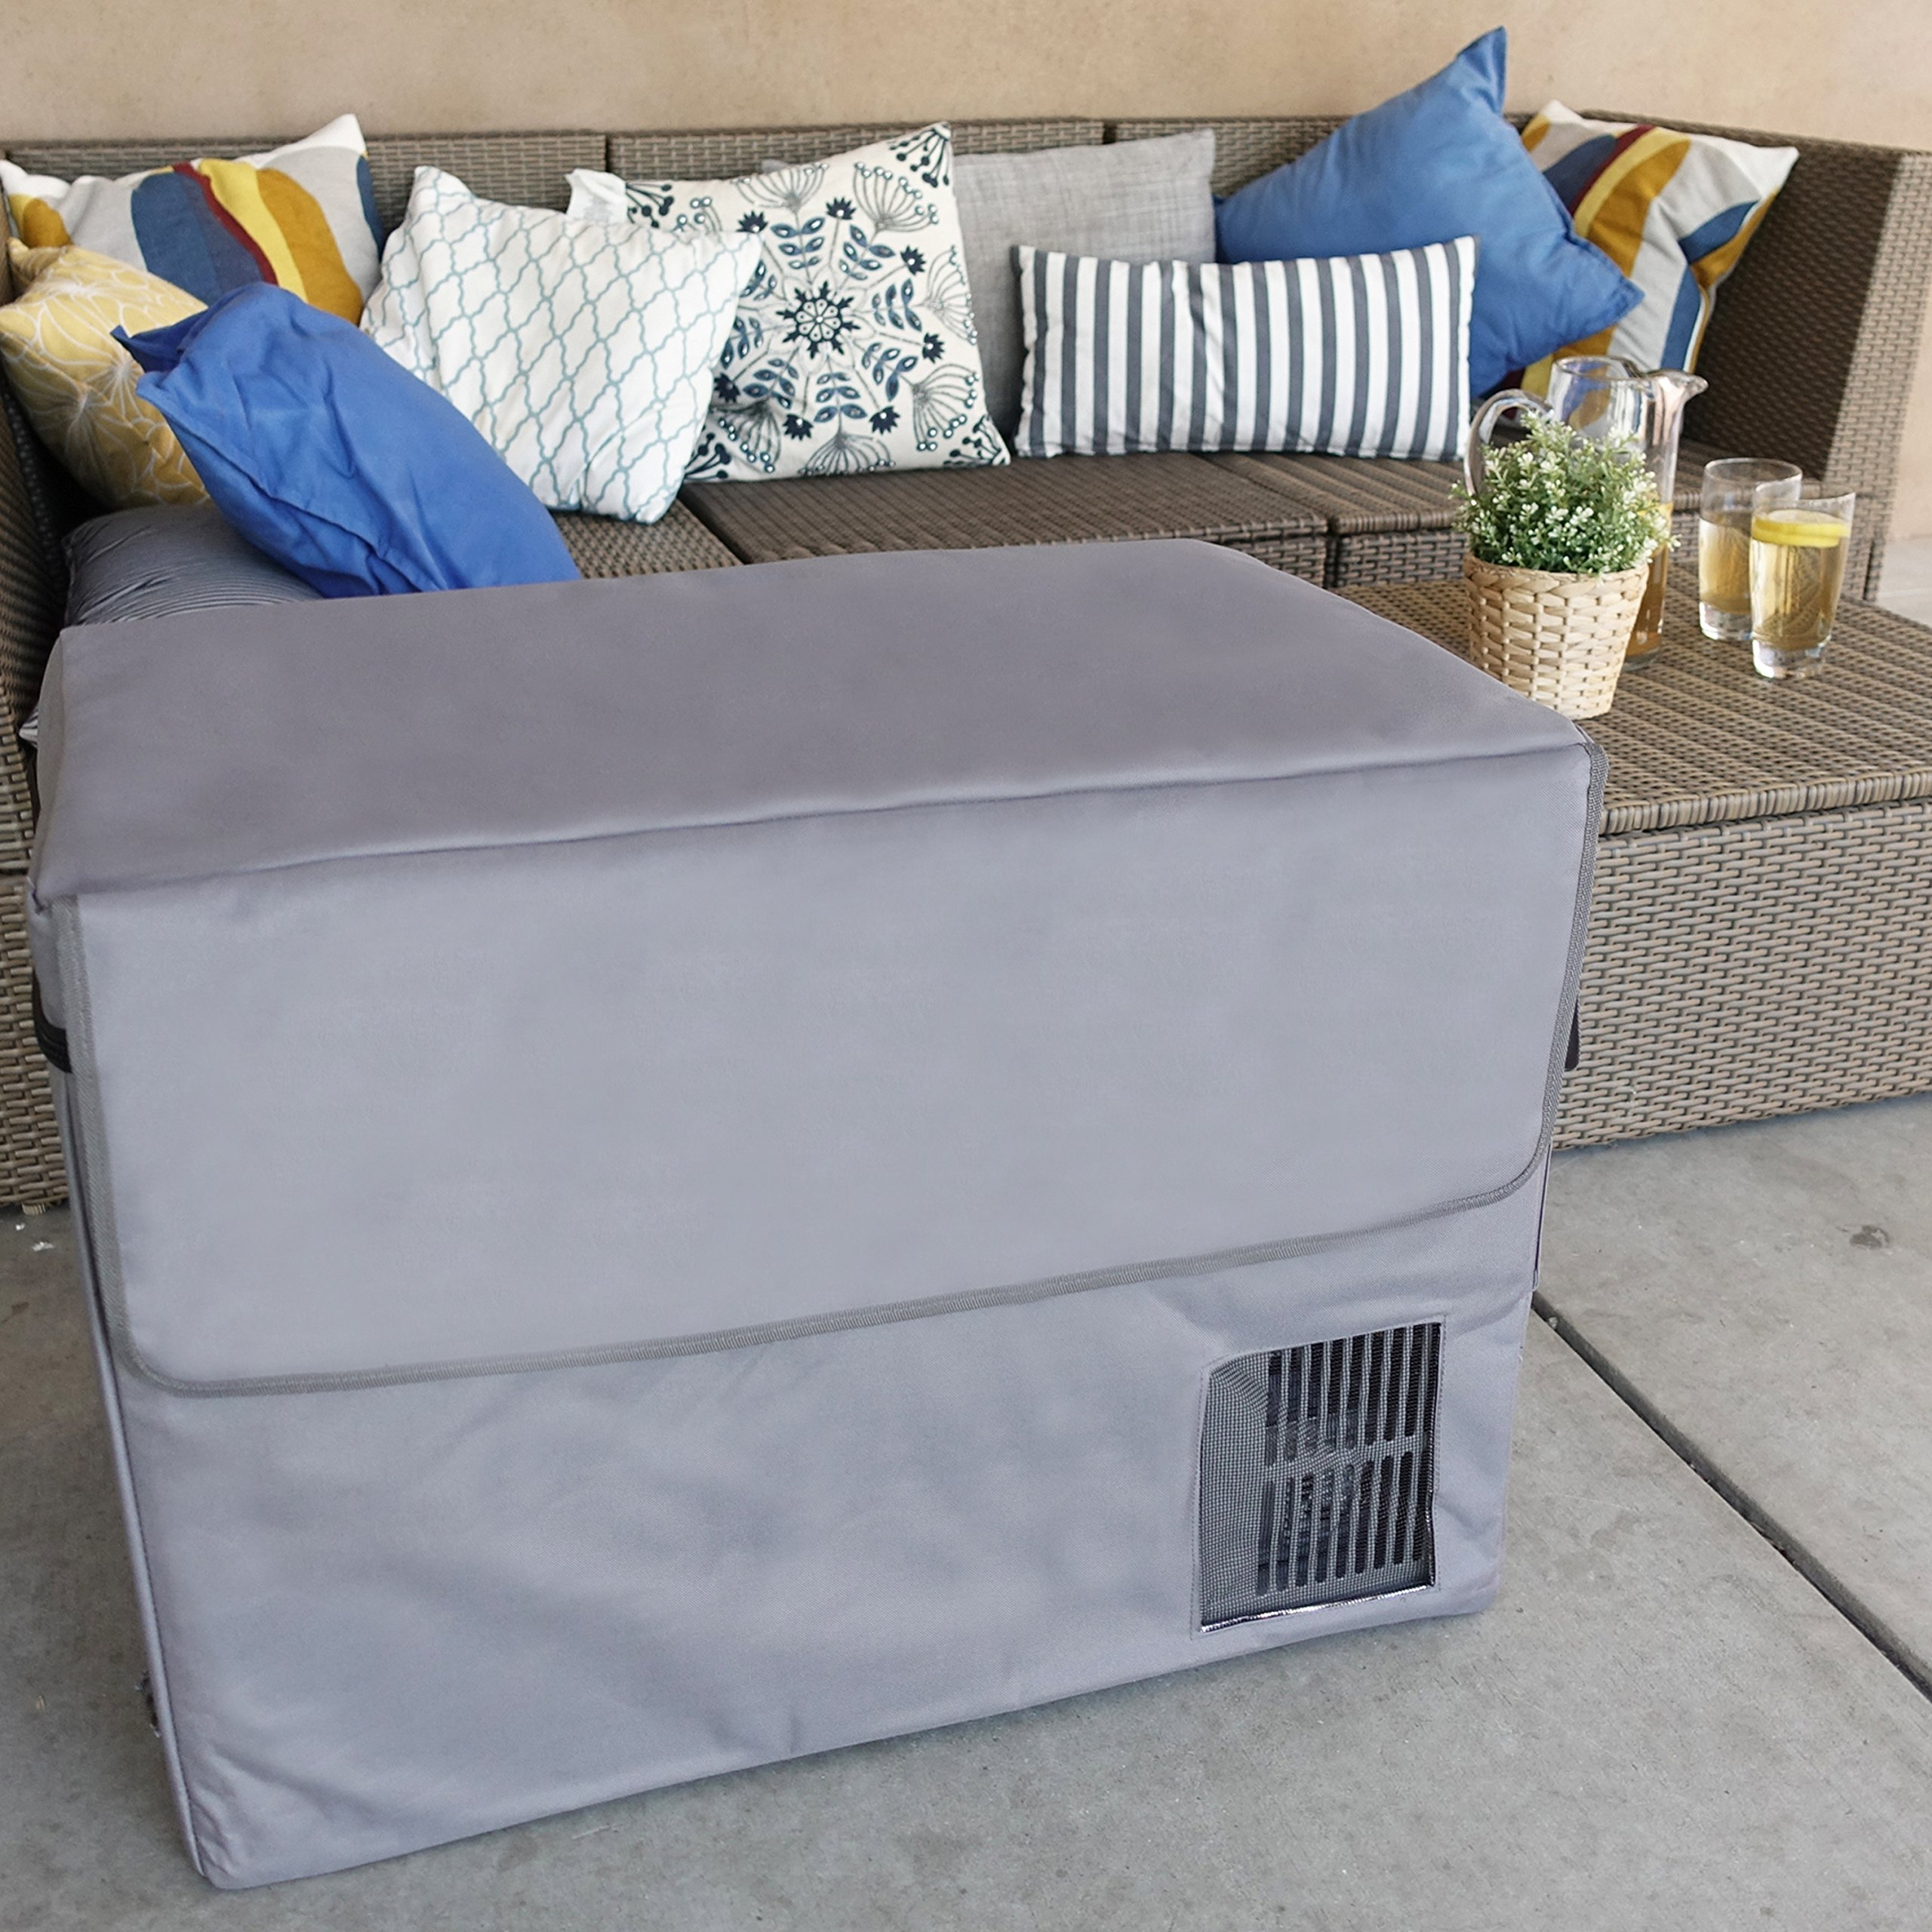 Whynter Insulated Transit Bag for Portable Refrigerator/Freezer Model FM-65G by Whynter (Image #3)